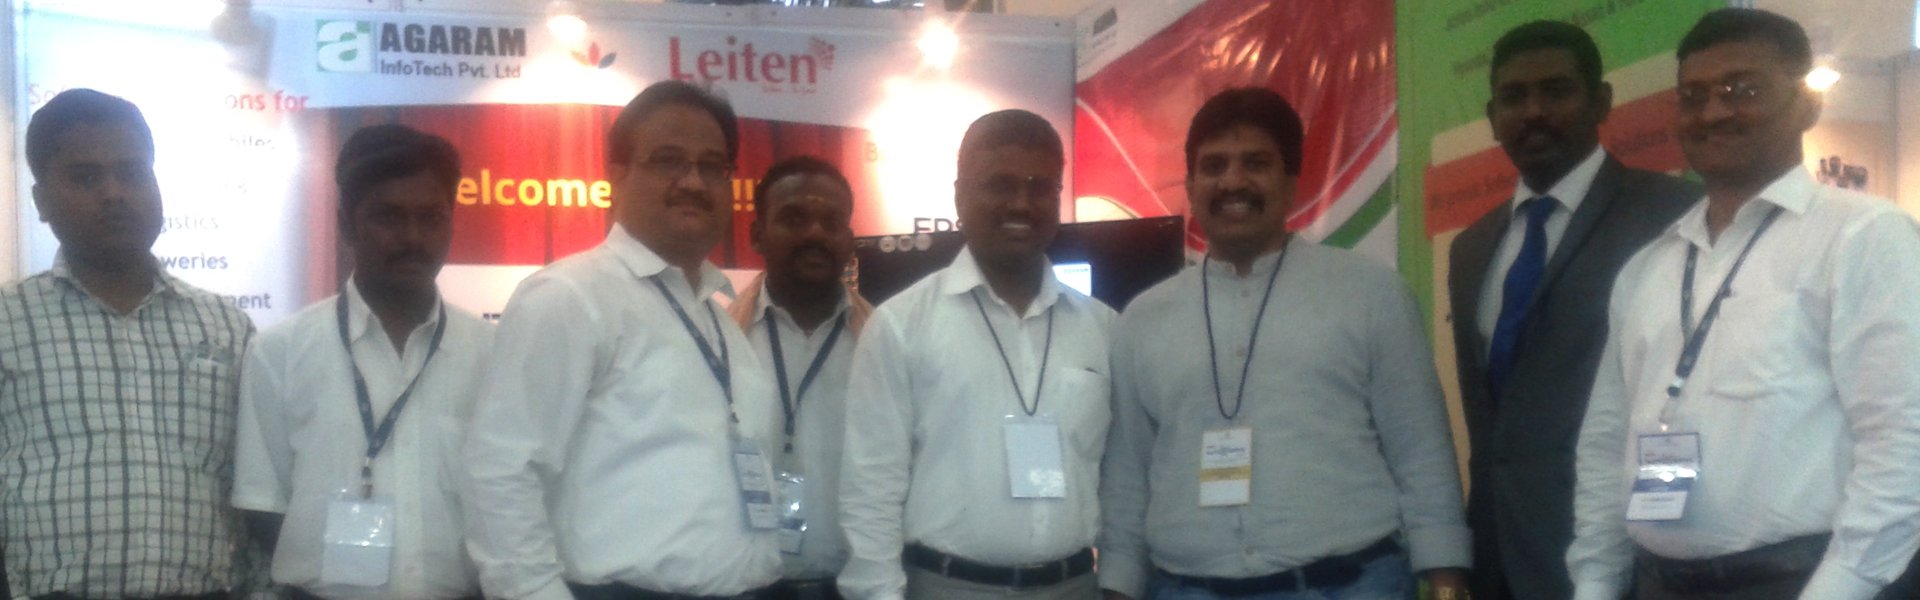 Agaram InfoTech participated as an exhibitor in the event AUTOSERVE - Agaram InfoTech